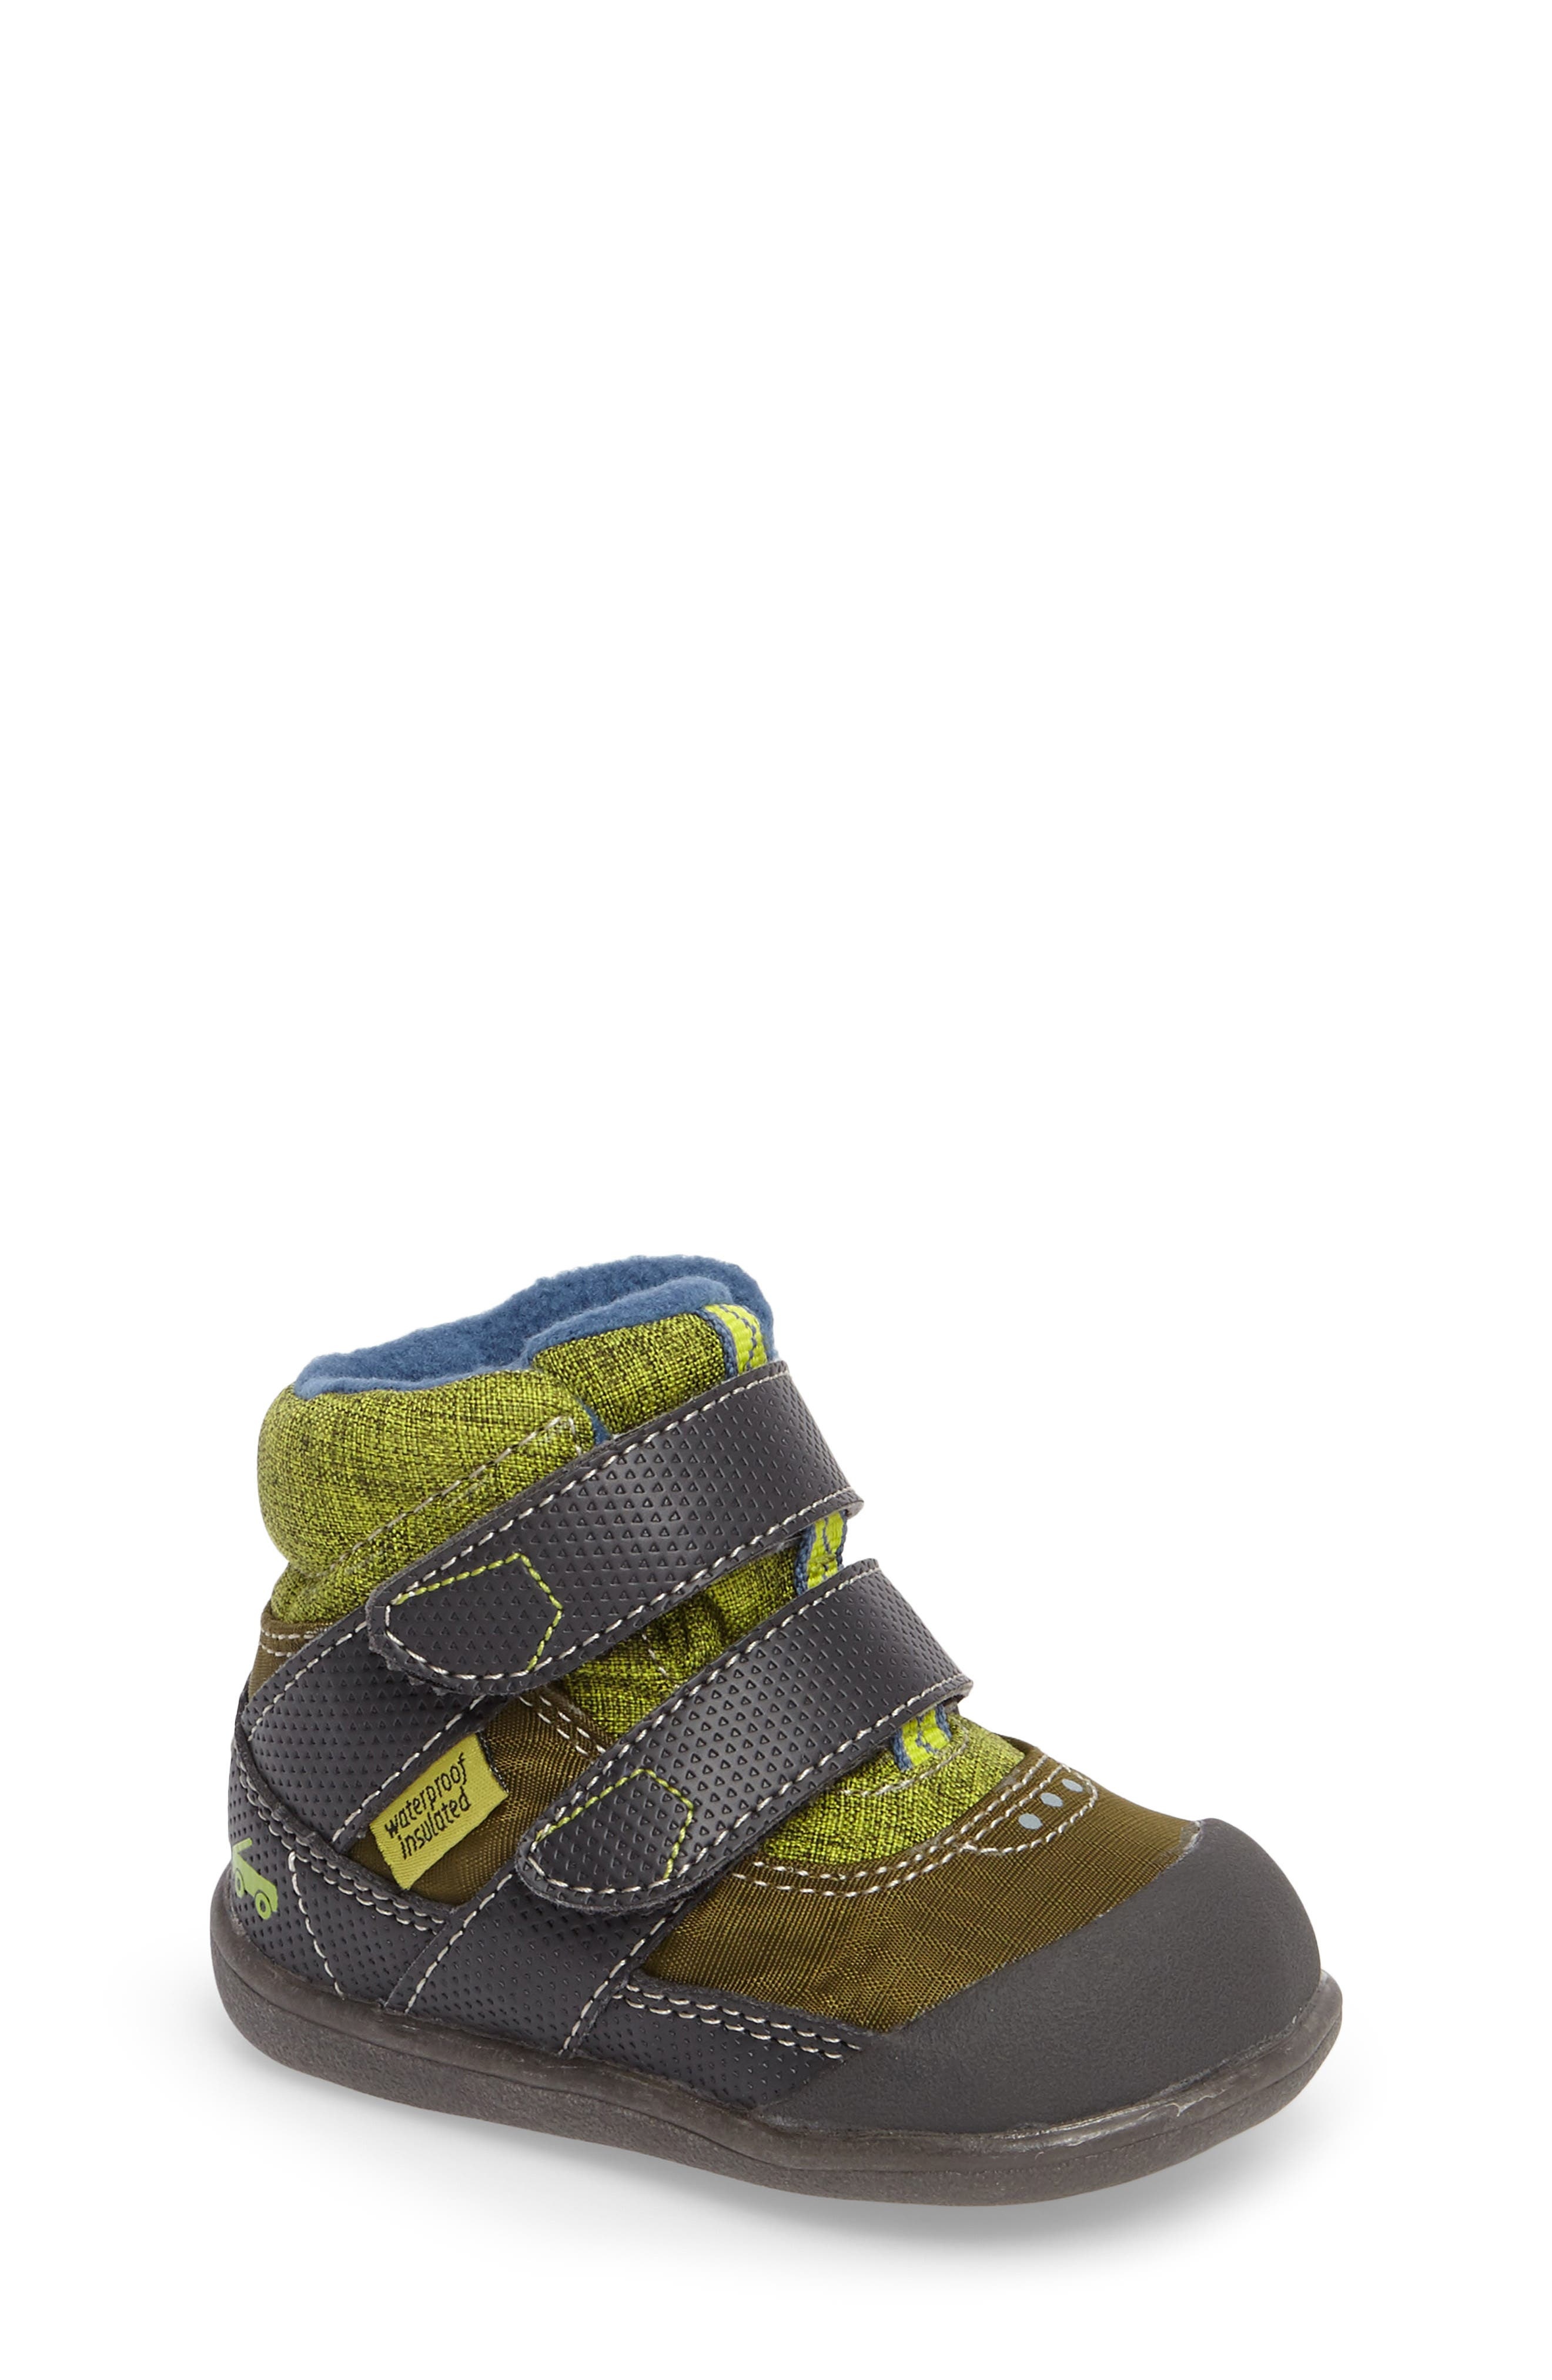 See Kai Run Atlas Waterproof Boot (Baby, Walker & Toddler)